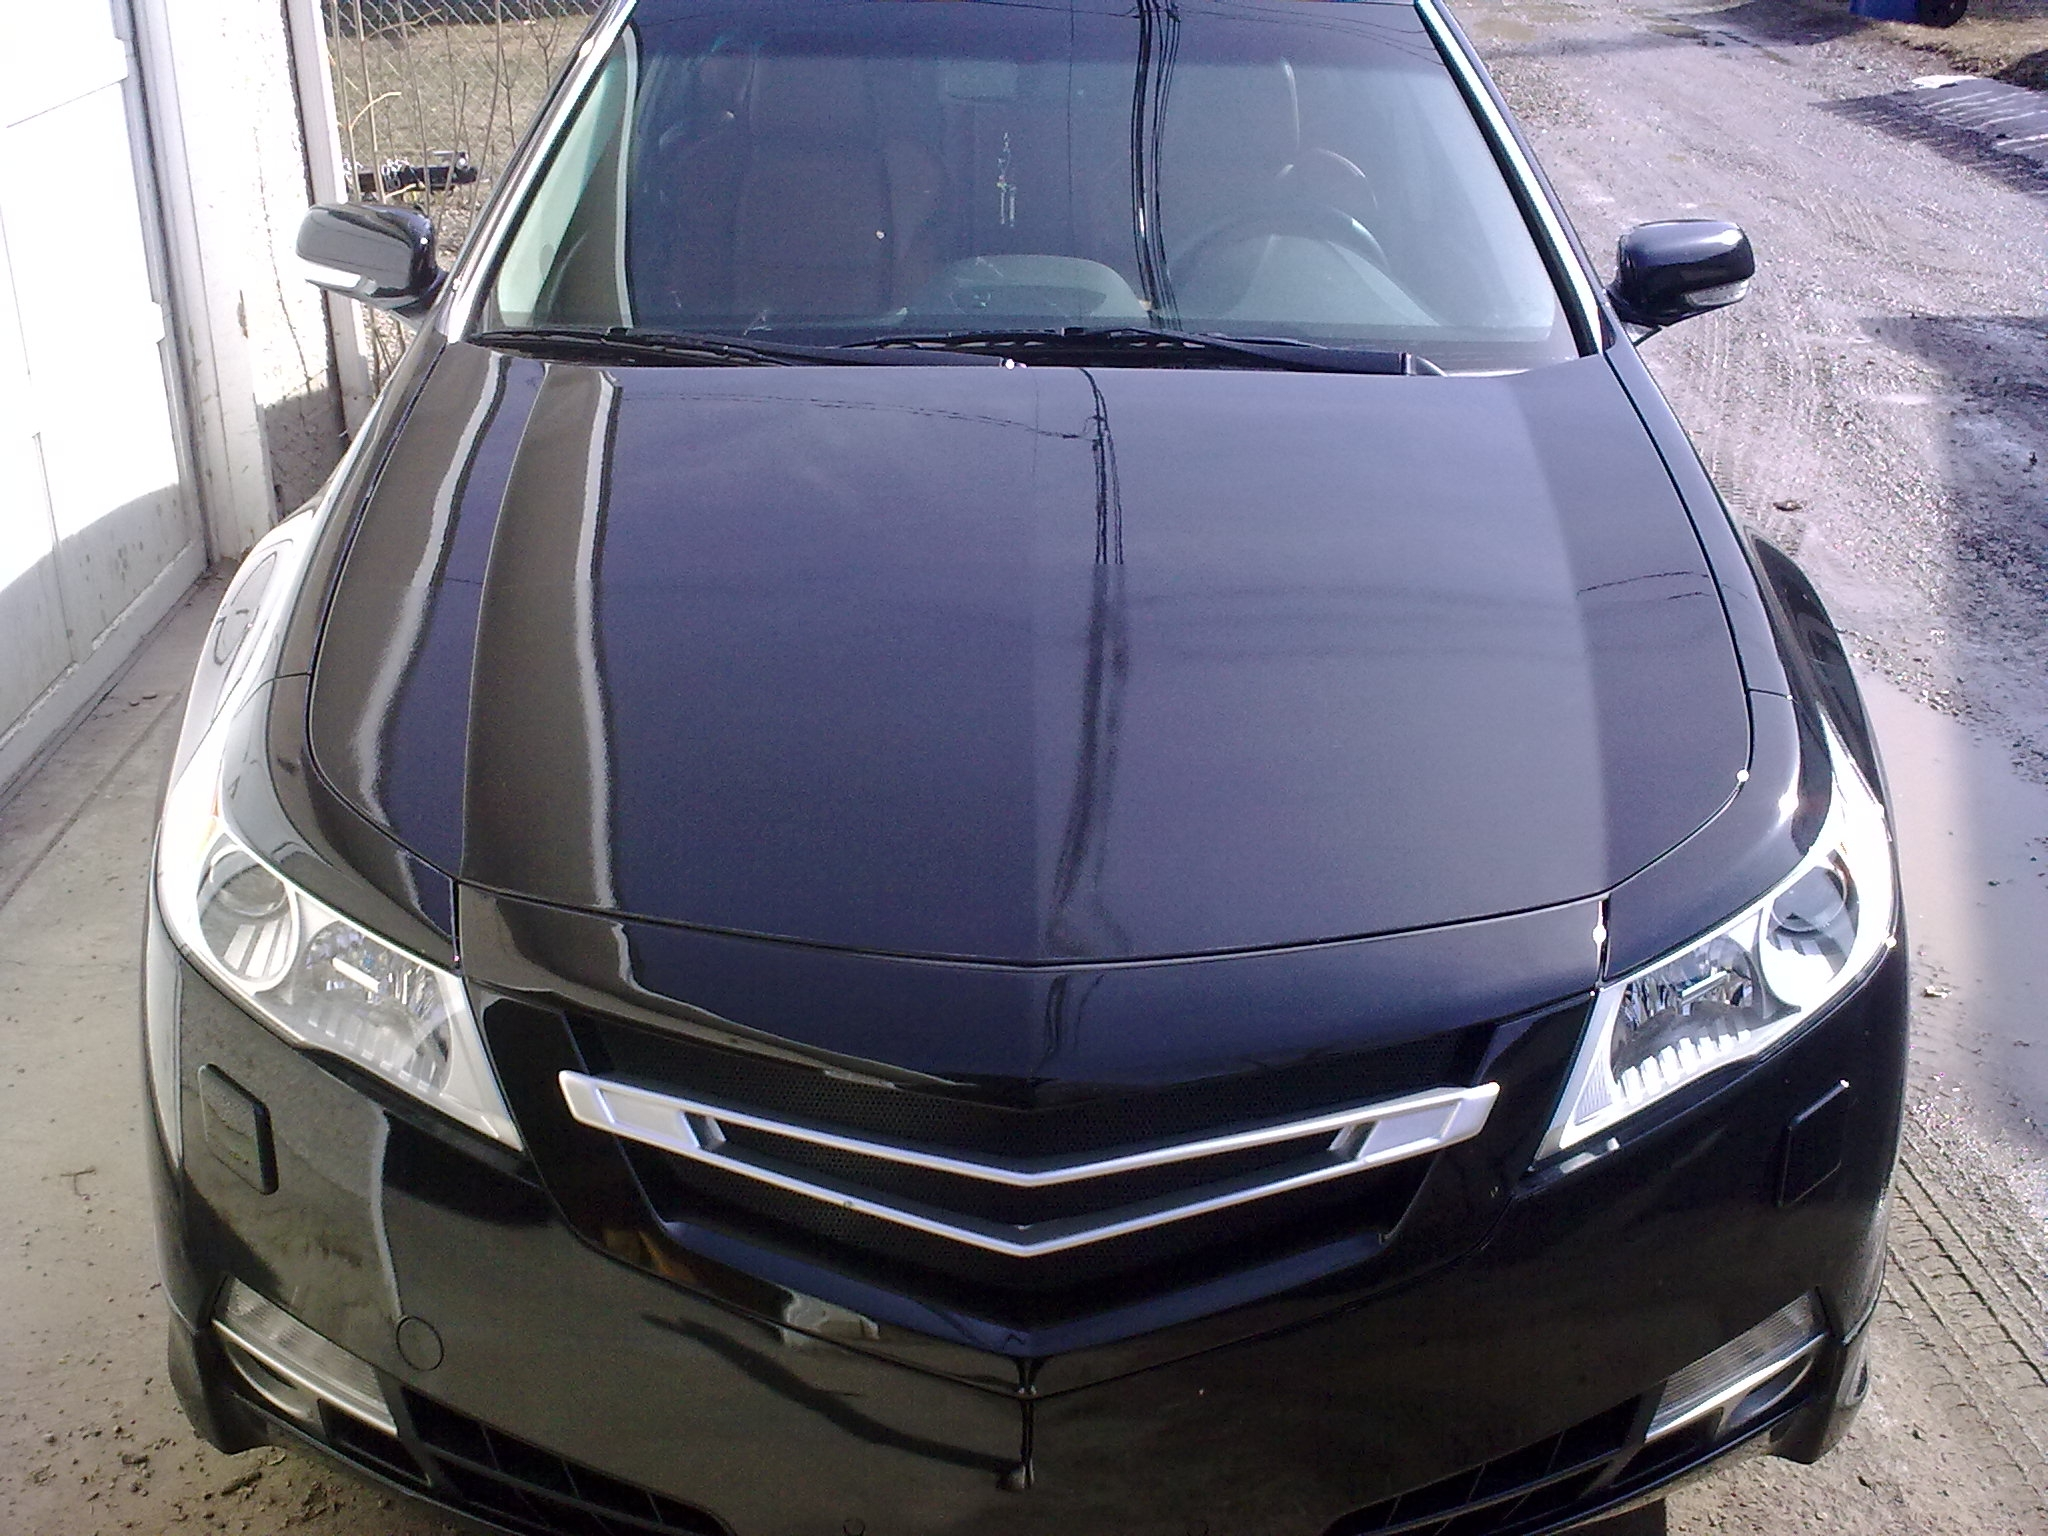 iEh's 2009 Acura TL